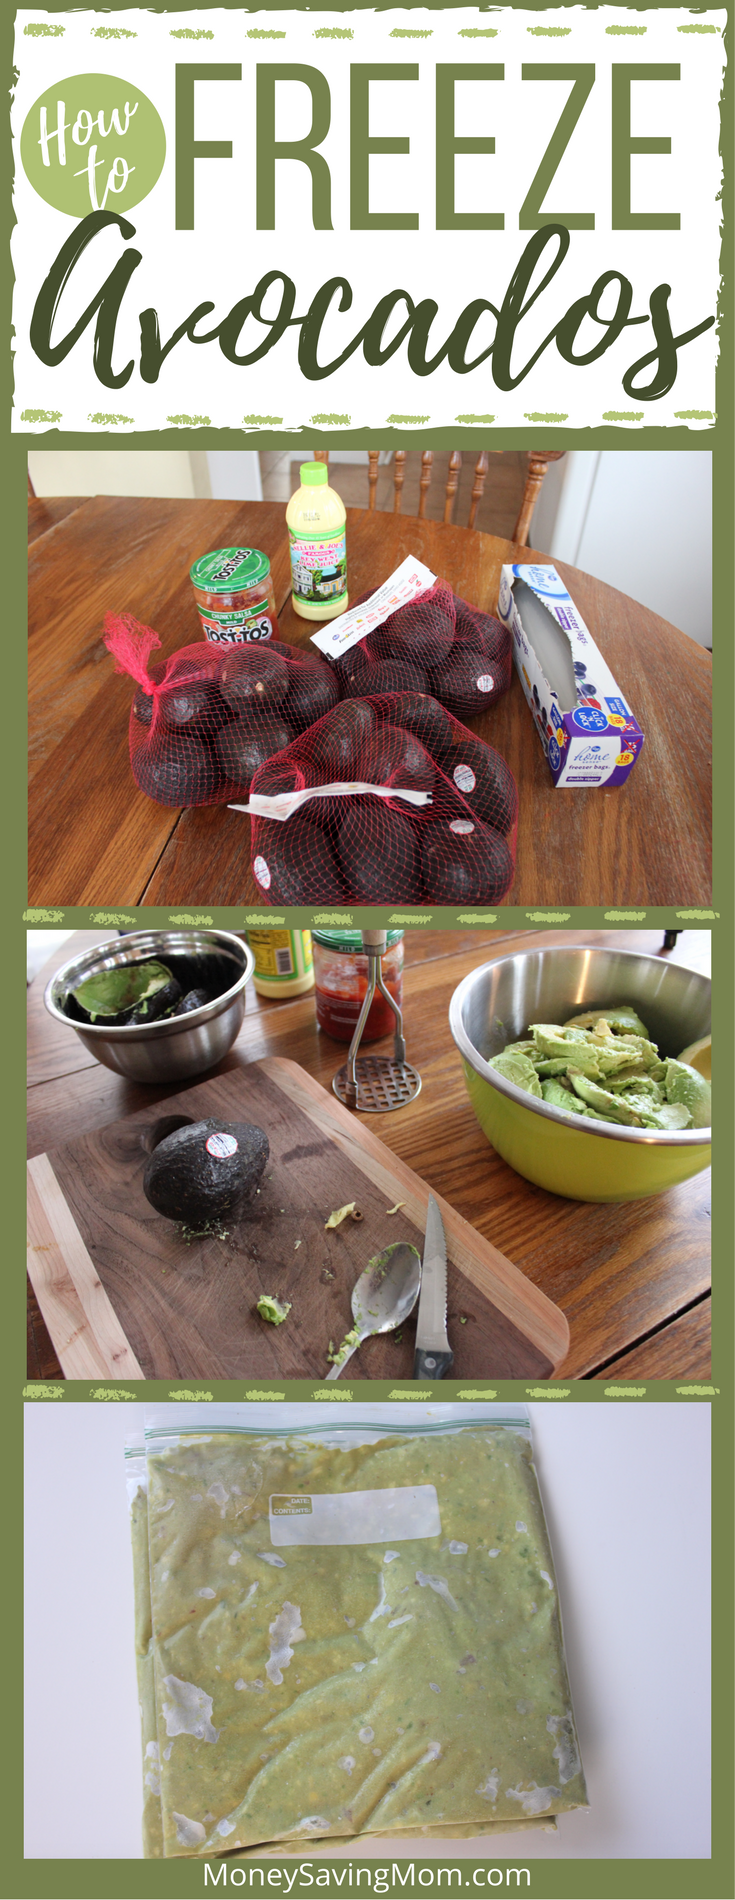 Yes -- you can freeze avocados! Read this post to find out how! It's actually SUPER simple!